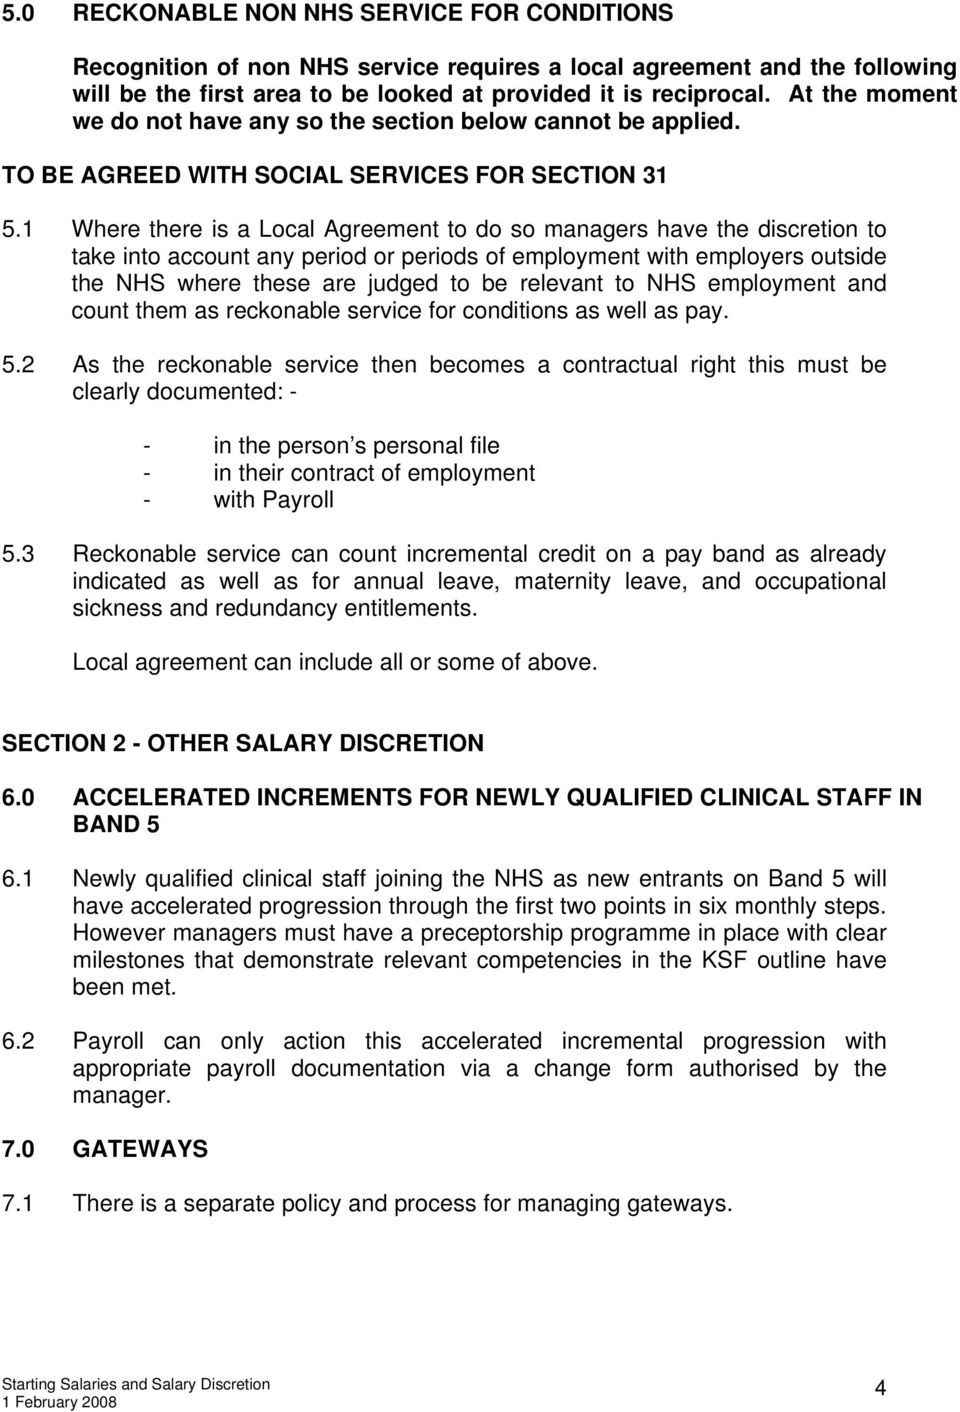 1 Where there is a Local Agreement to do so managers have the discretion to take into account any period or periods of employment with employers outside the NHS where these are judged to be relevant